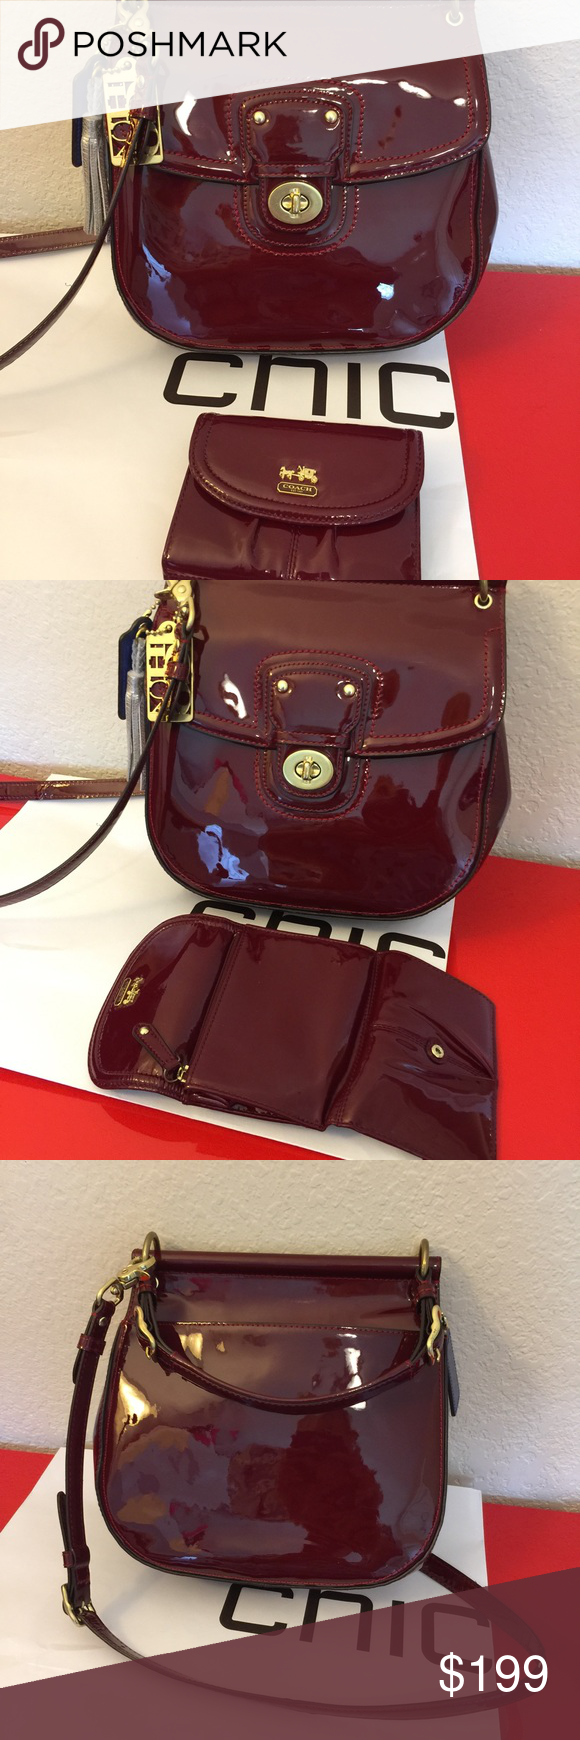 Coach Patent Leather Crimson Willis Bag Excellent Condition 10 X 9 5 3 25 Authentic 21244 Flap With Turn Lock Gold Hardware Legacy Satin